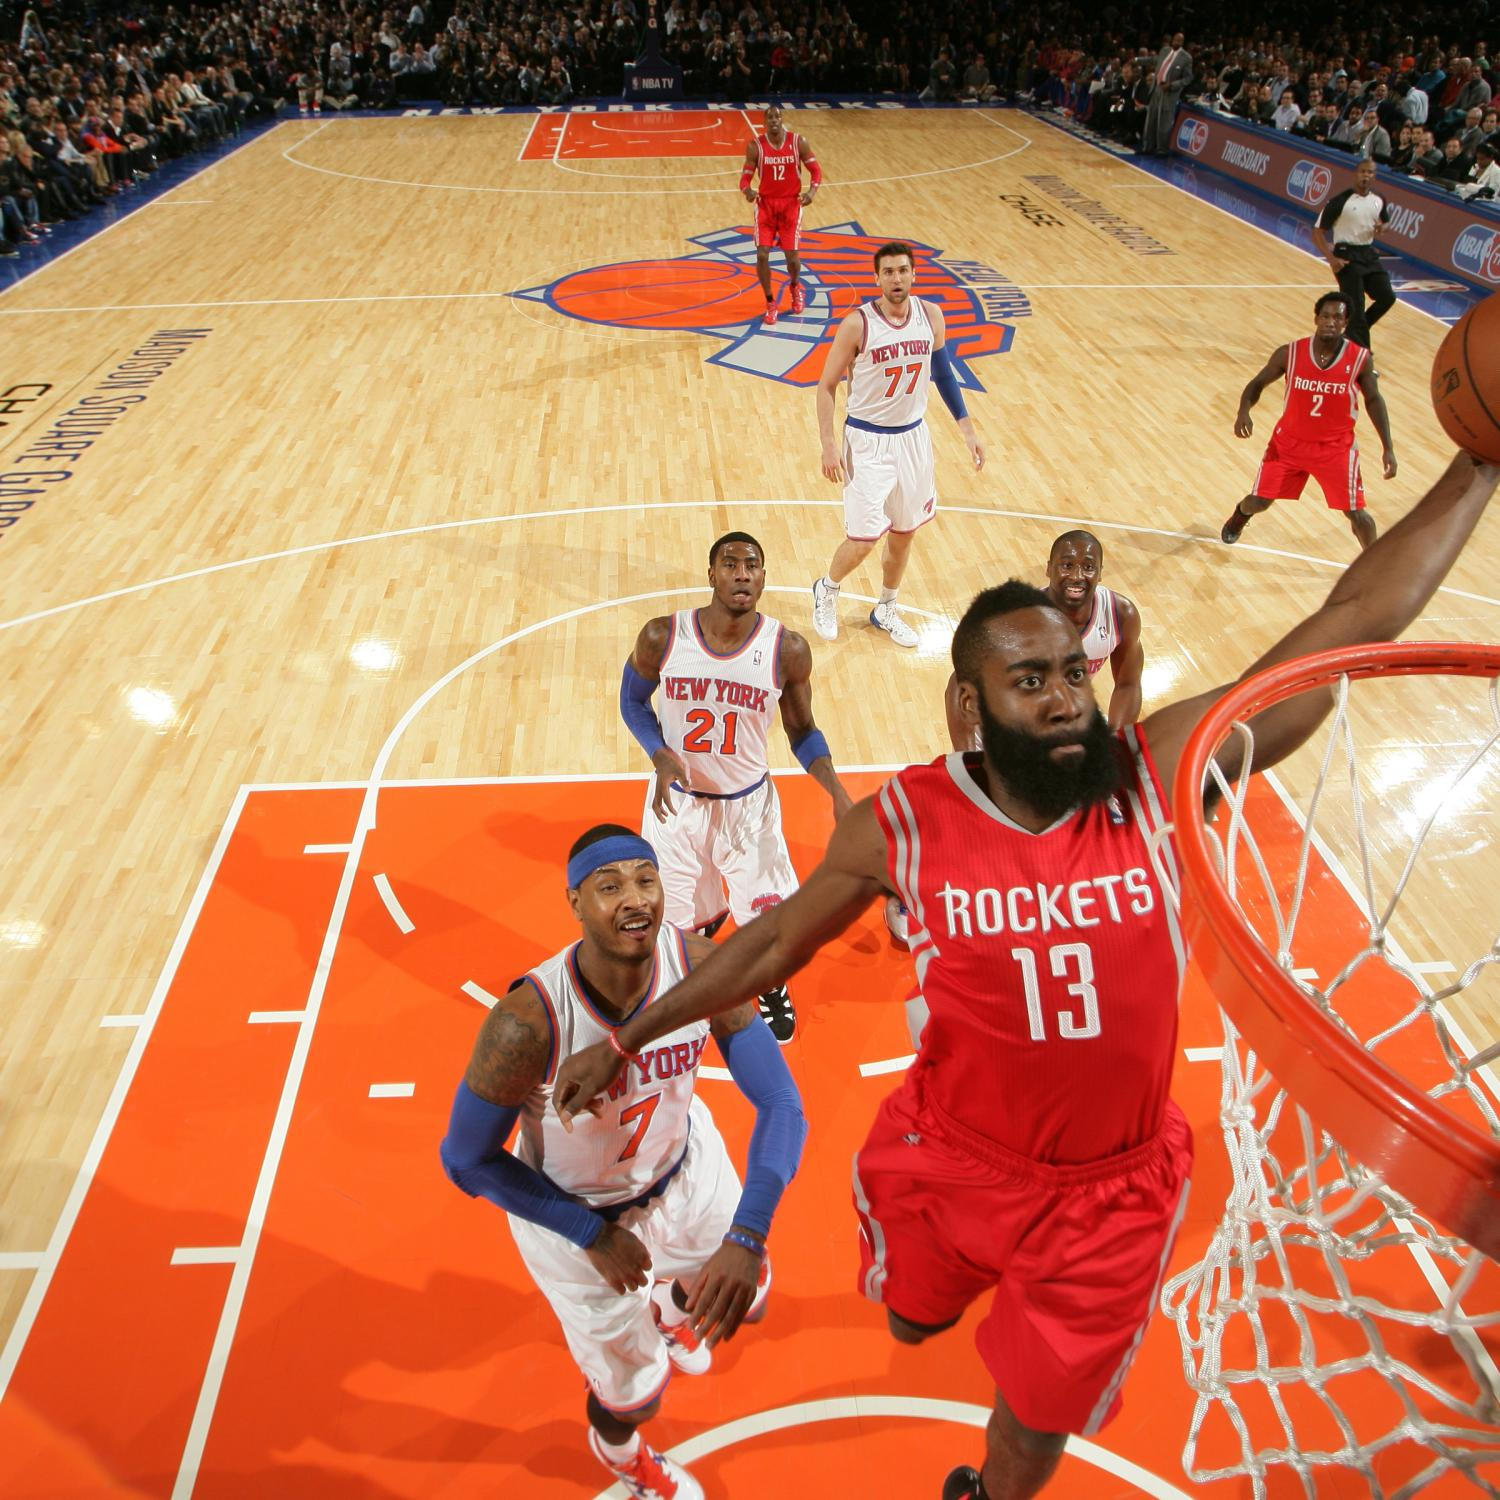 hi-res-188098940-james-harden-of-the-houston-rockets-drives-to-the_crop_exact